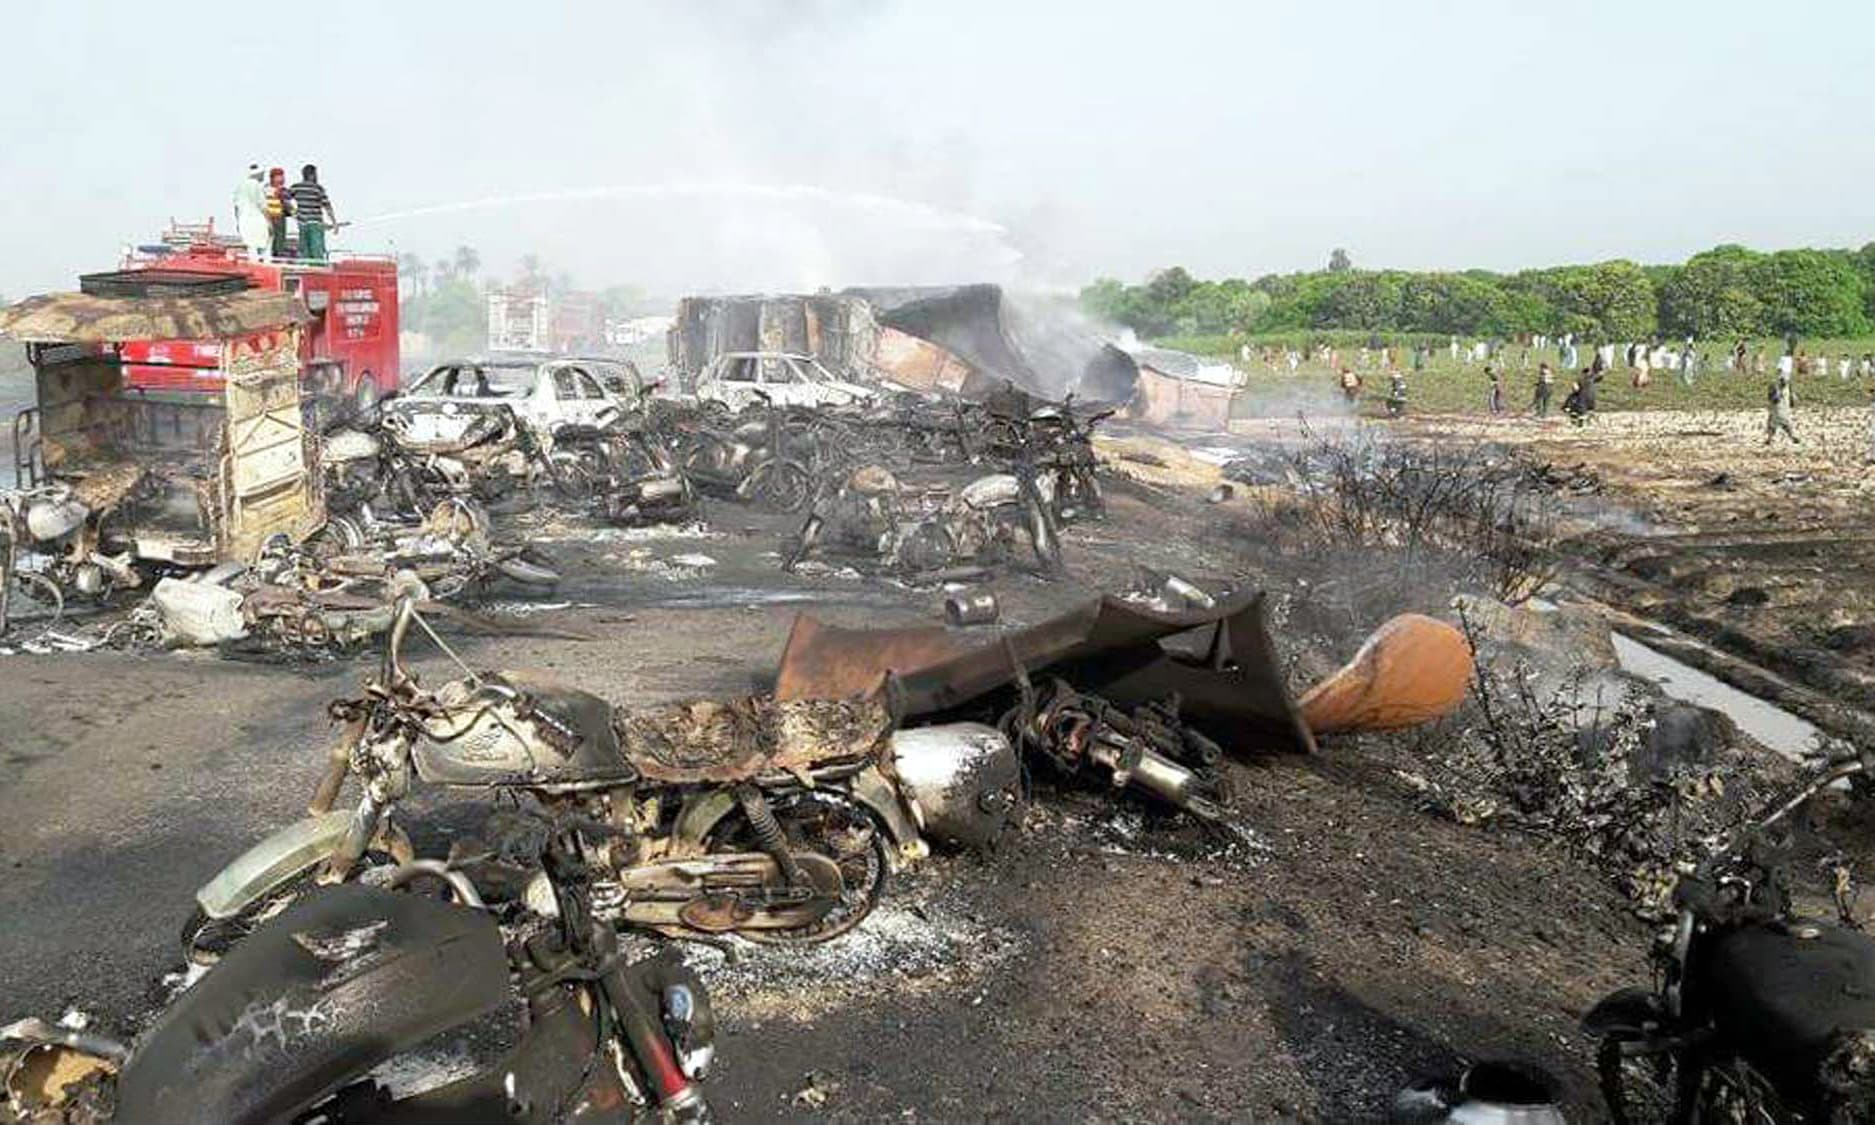 Burnt out cars and motorcycles are seen at the scene of an oil tanker explosion in Bahawalpur. ─PPI